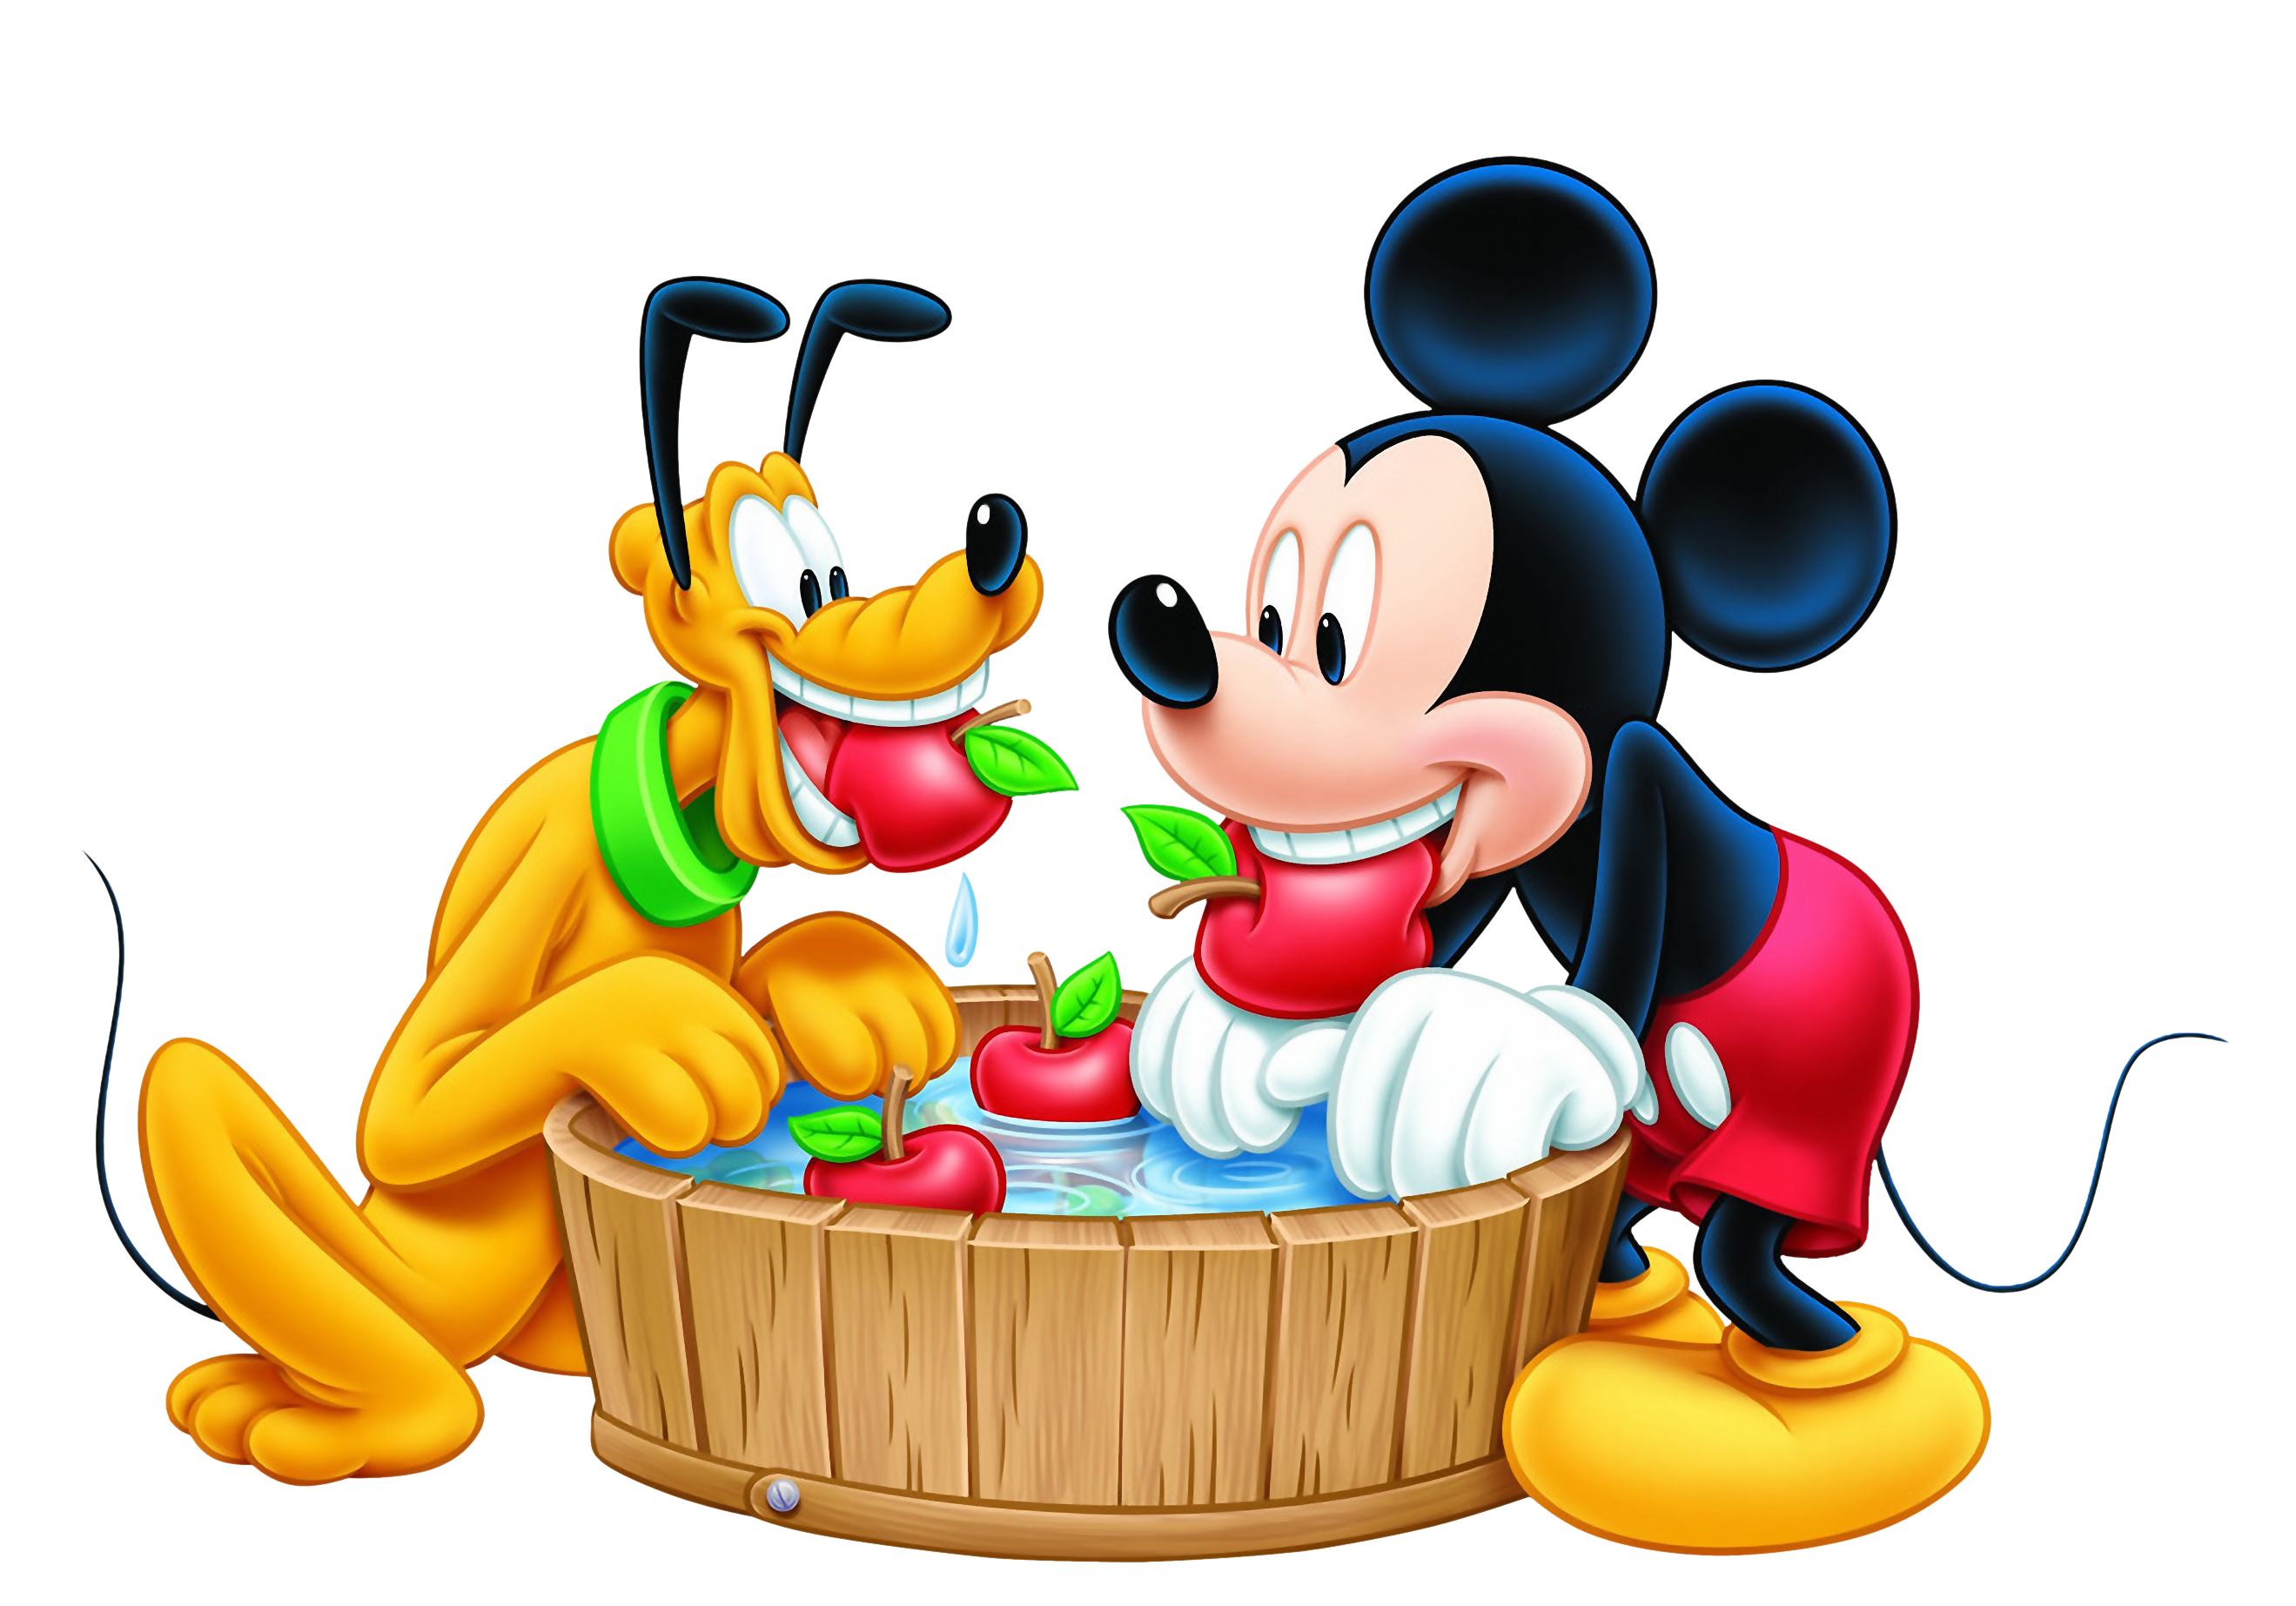 And pluto transparent image. Mickey mouse png images